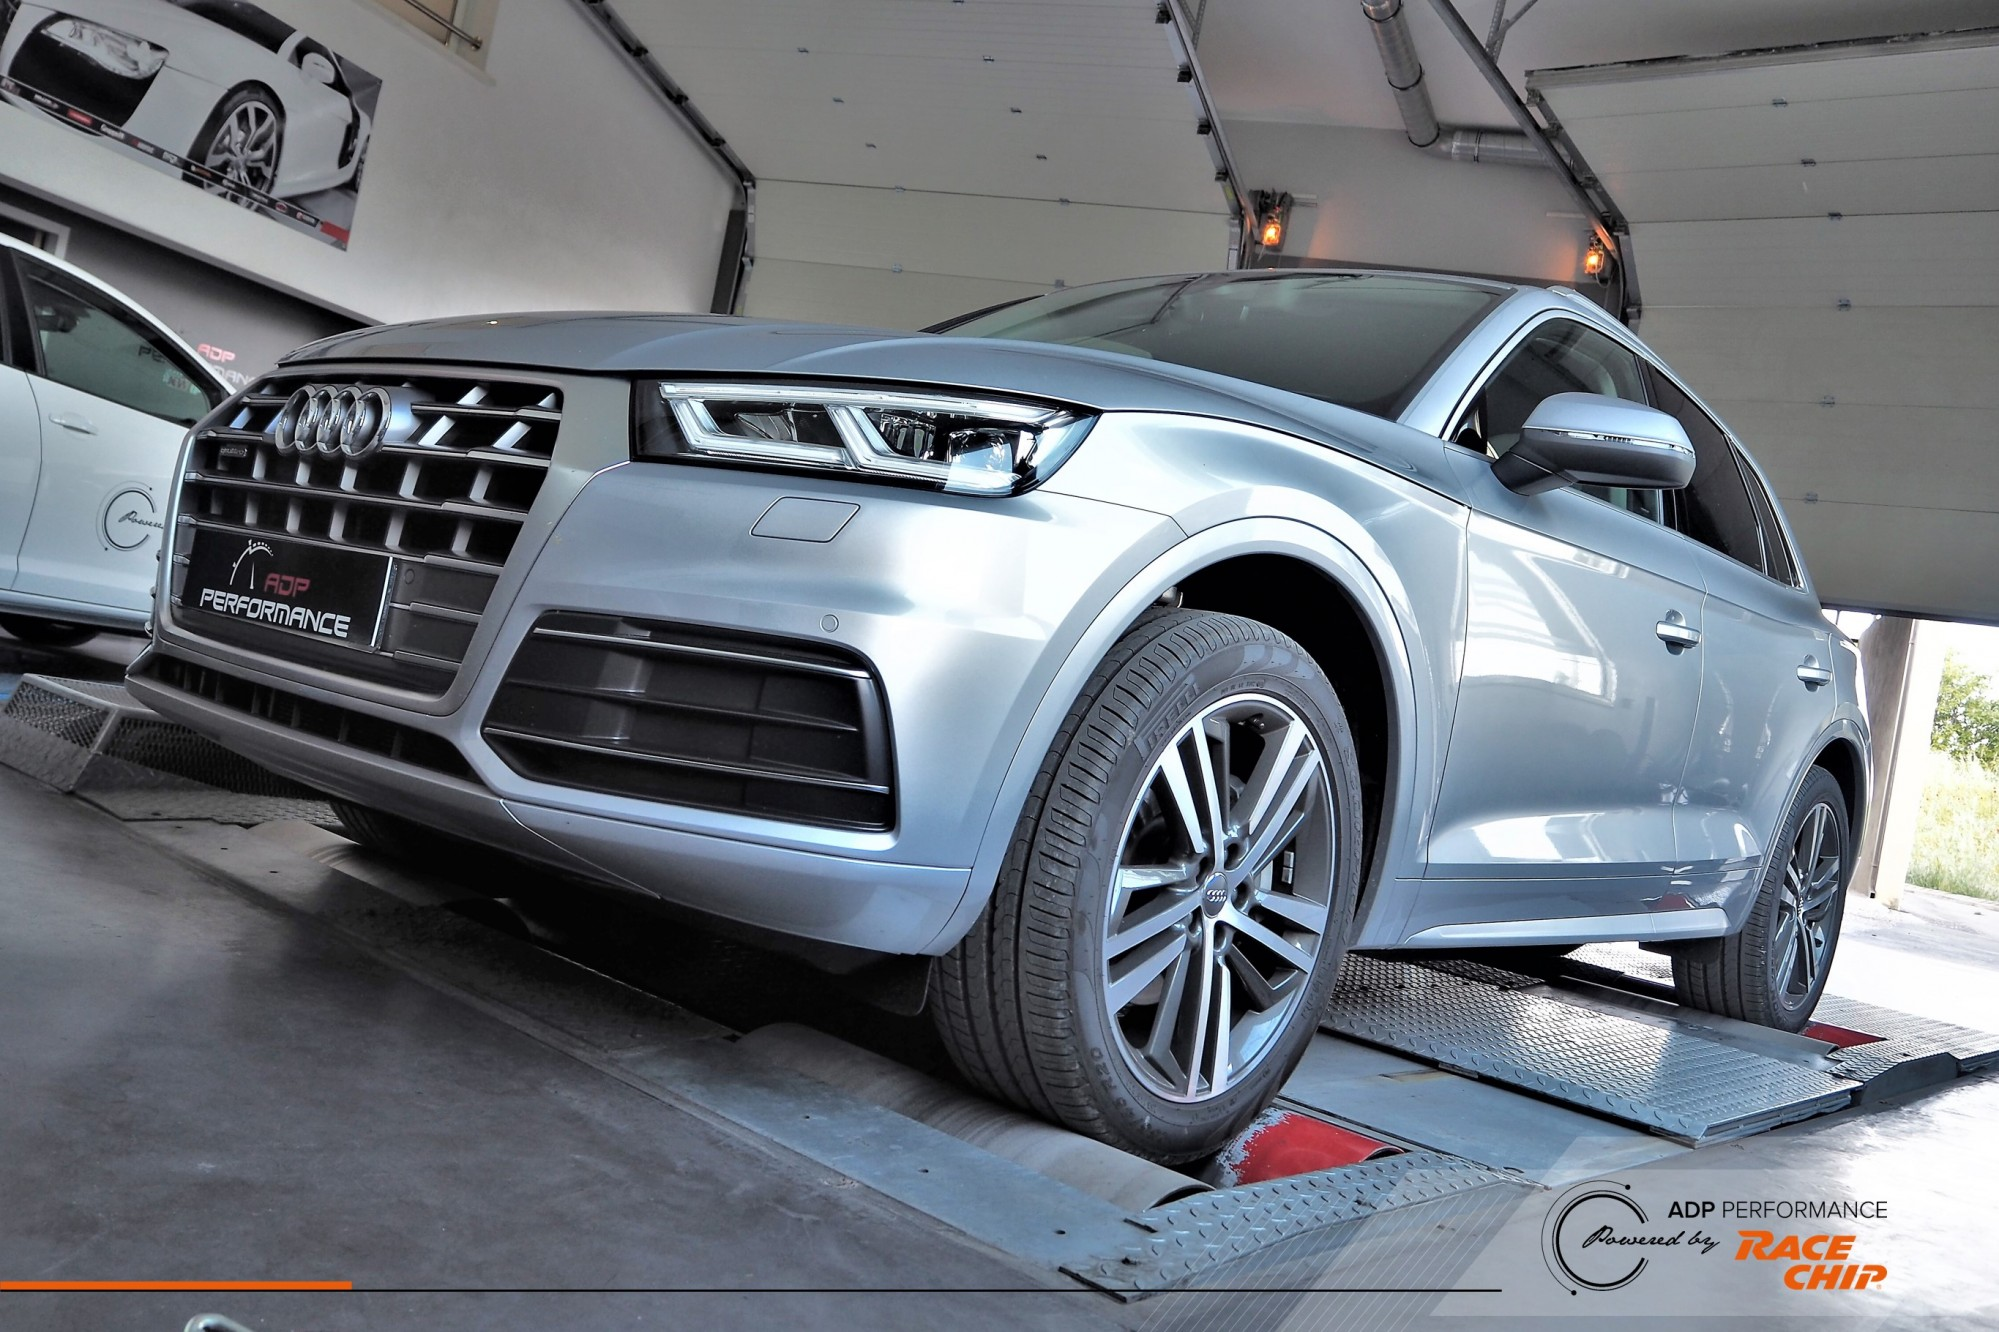 RaceChip Ultimate Connect Salon de Provence - Audi Q5 (2017) 2.0 TDI 190cv - ADP Performance